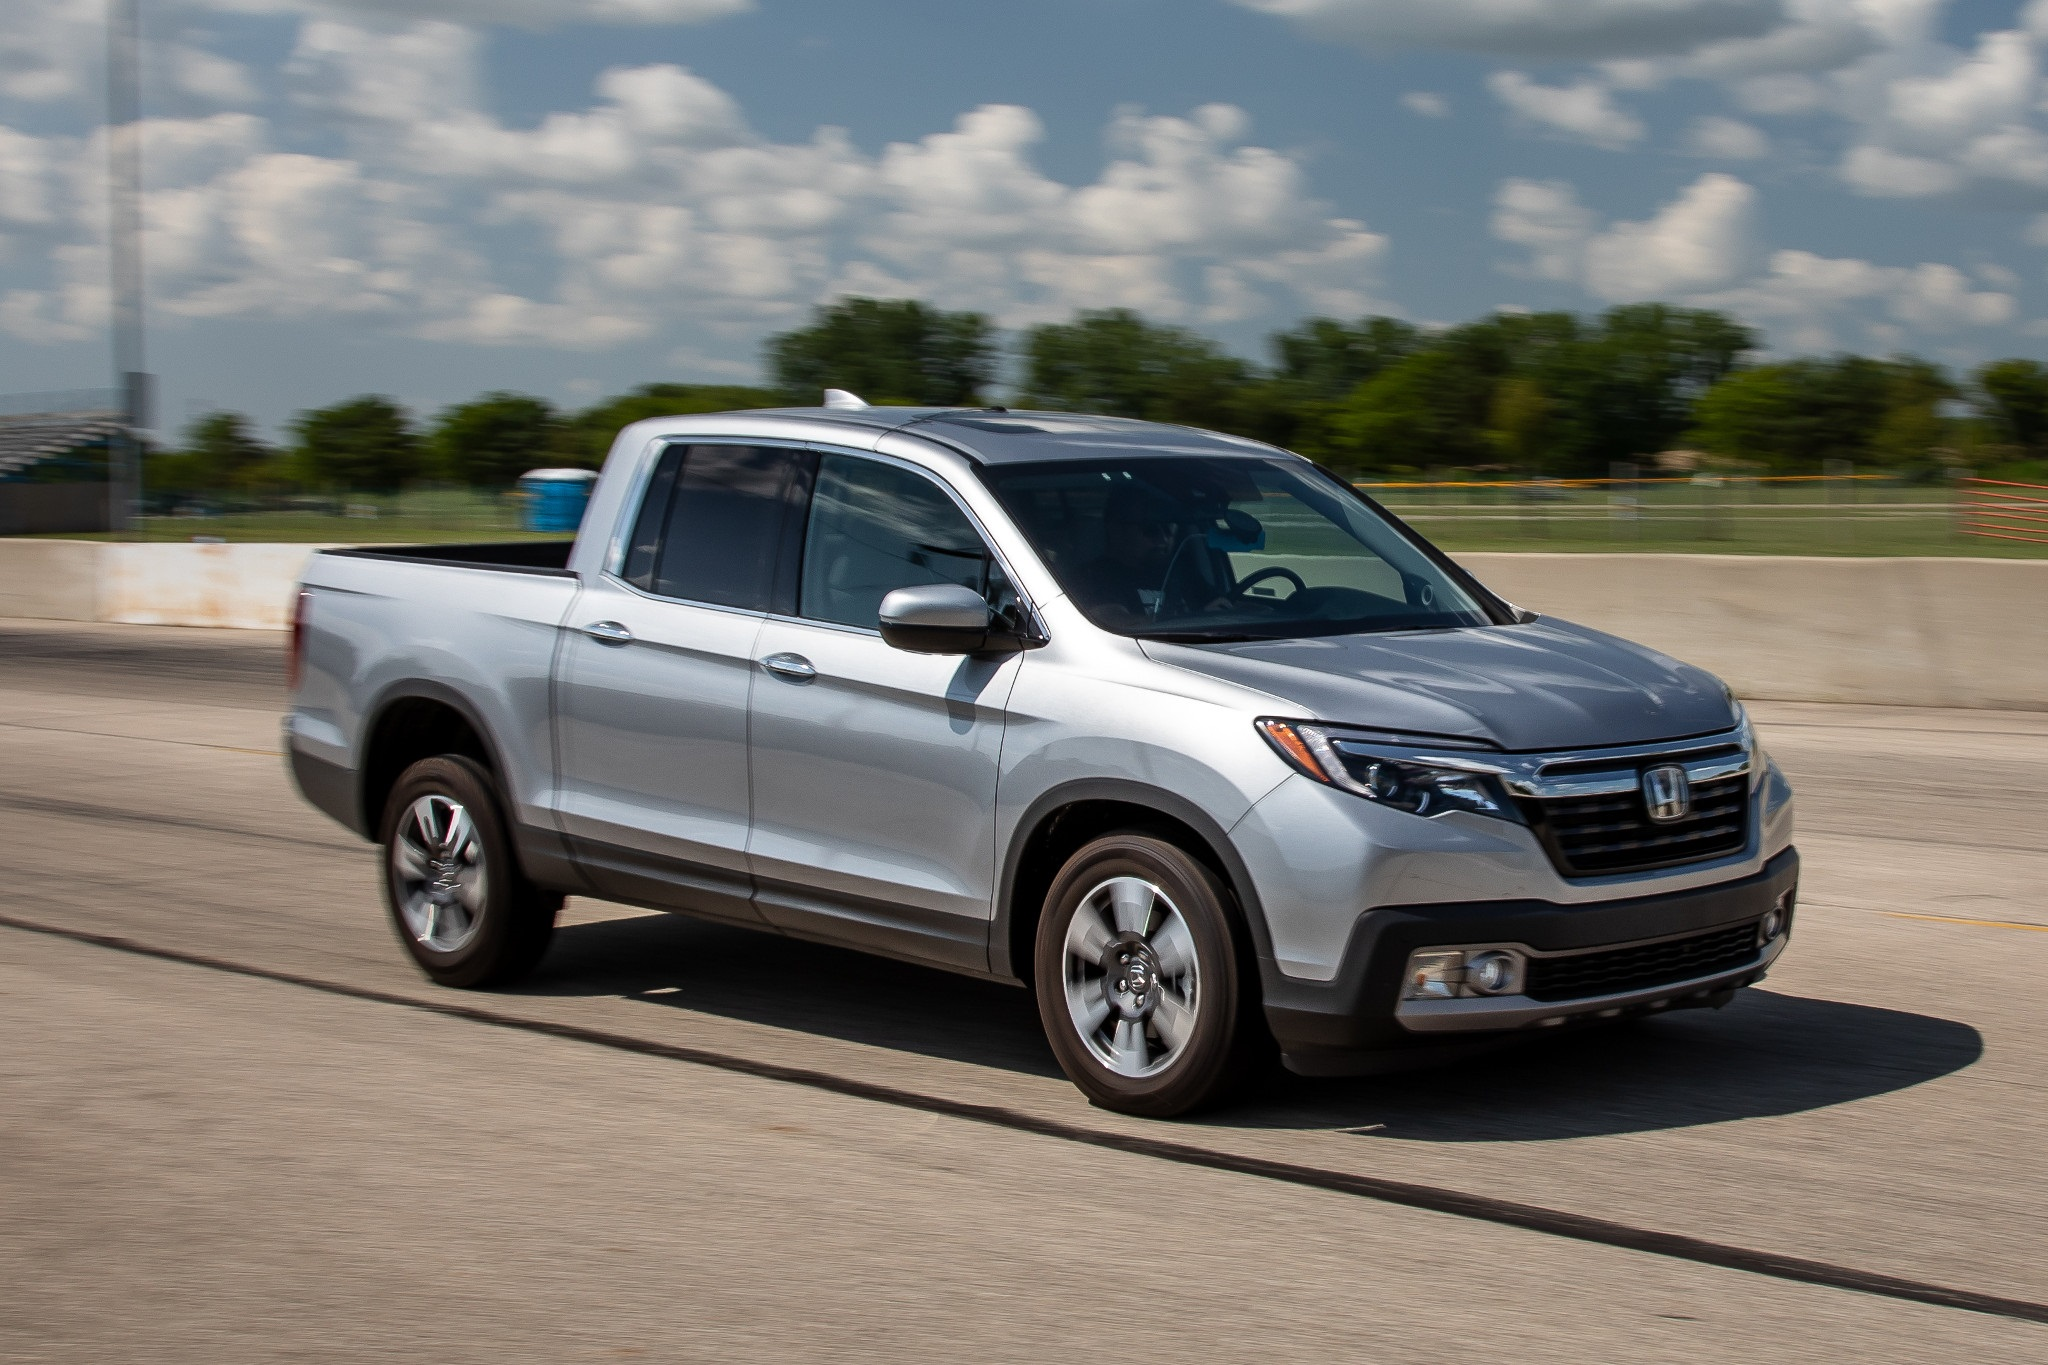 2021 Honda Ridgeline Changes: Hybrid and Type R Rumors